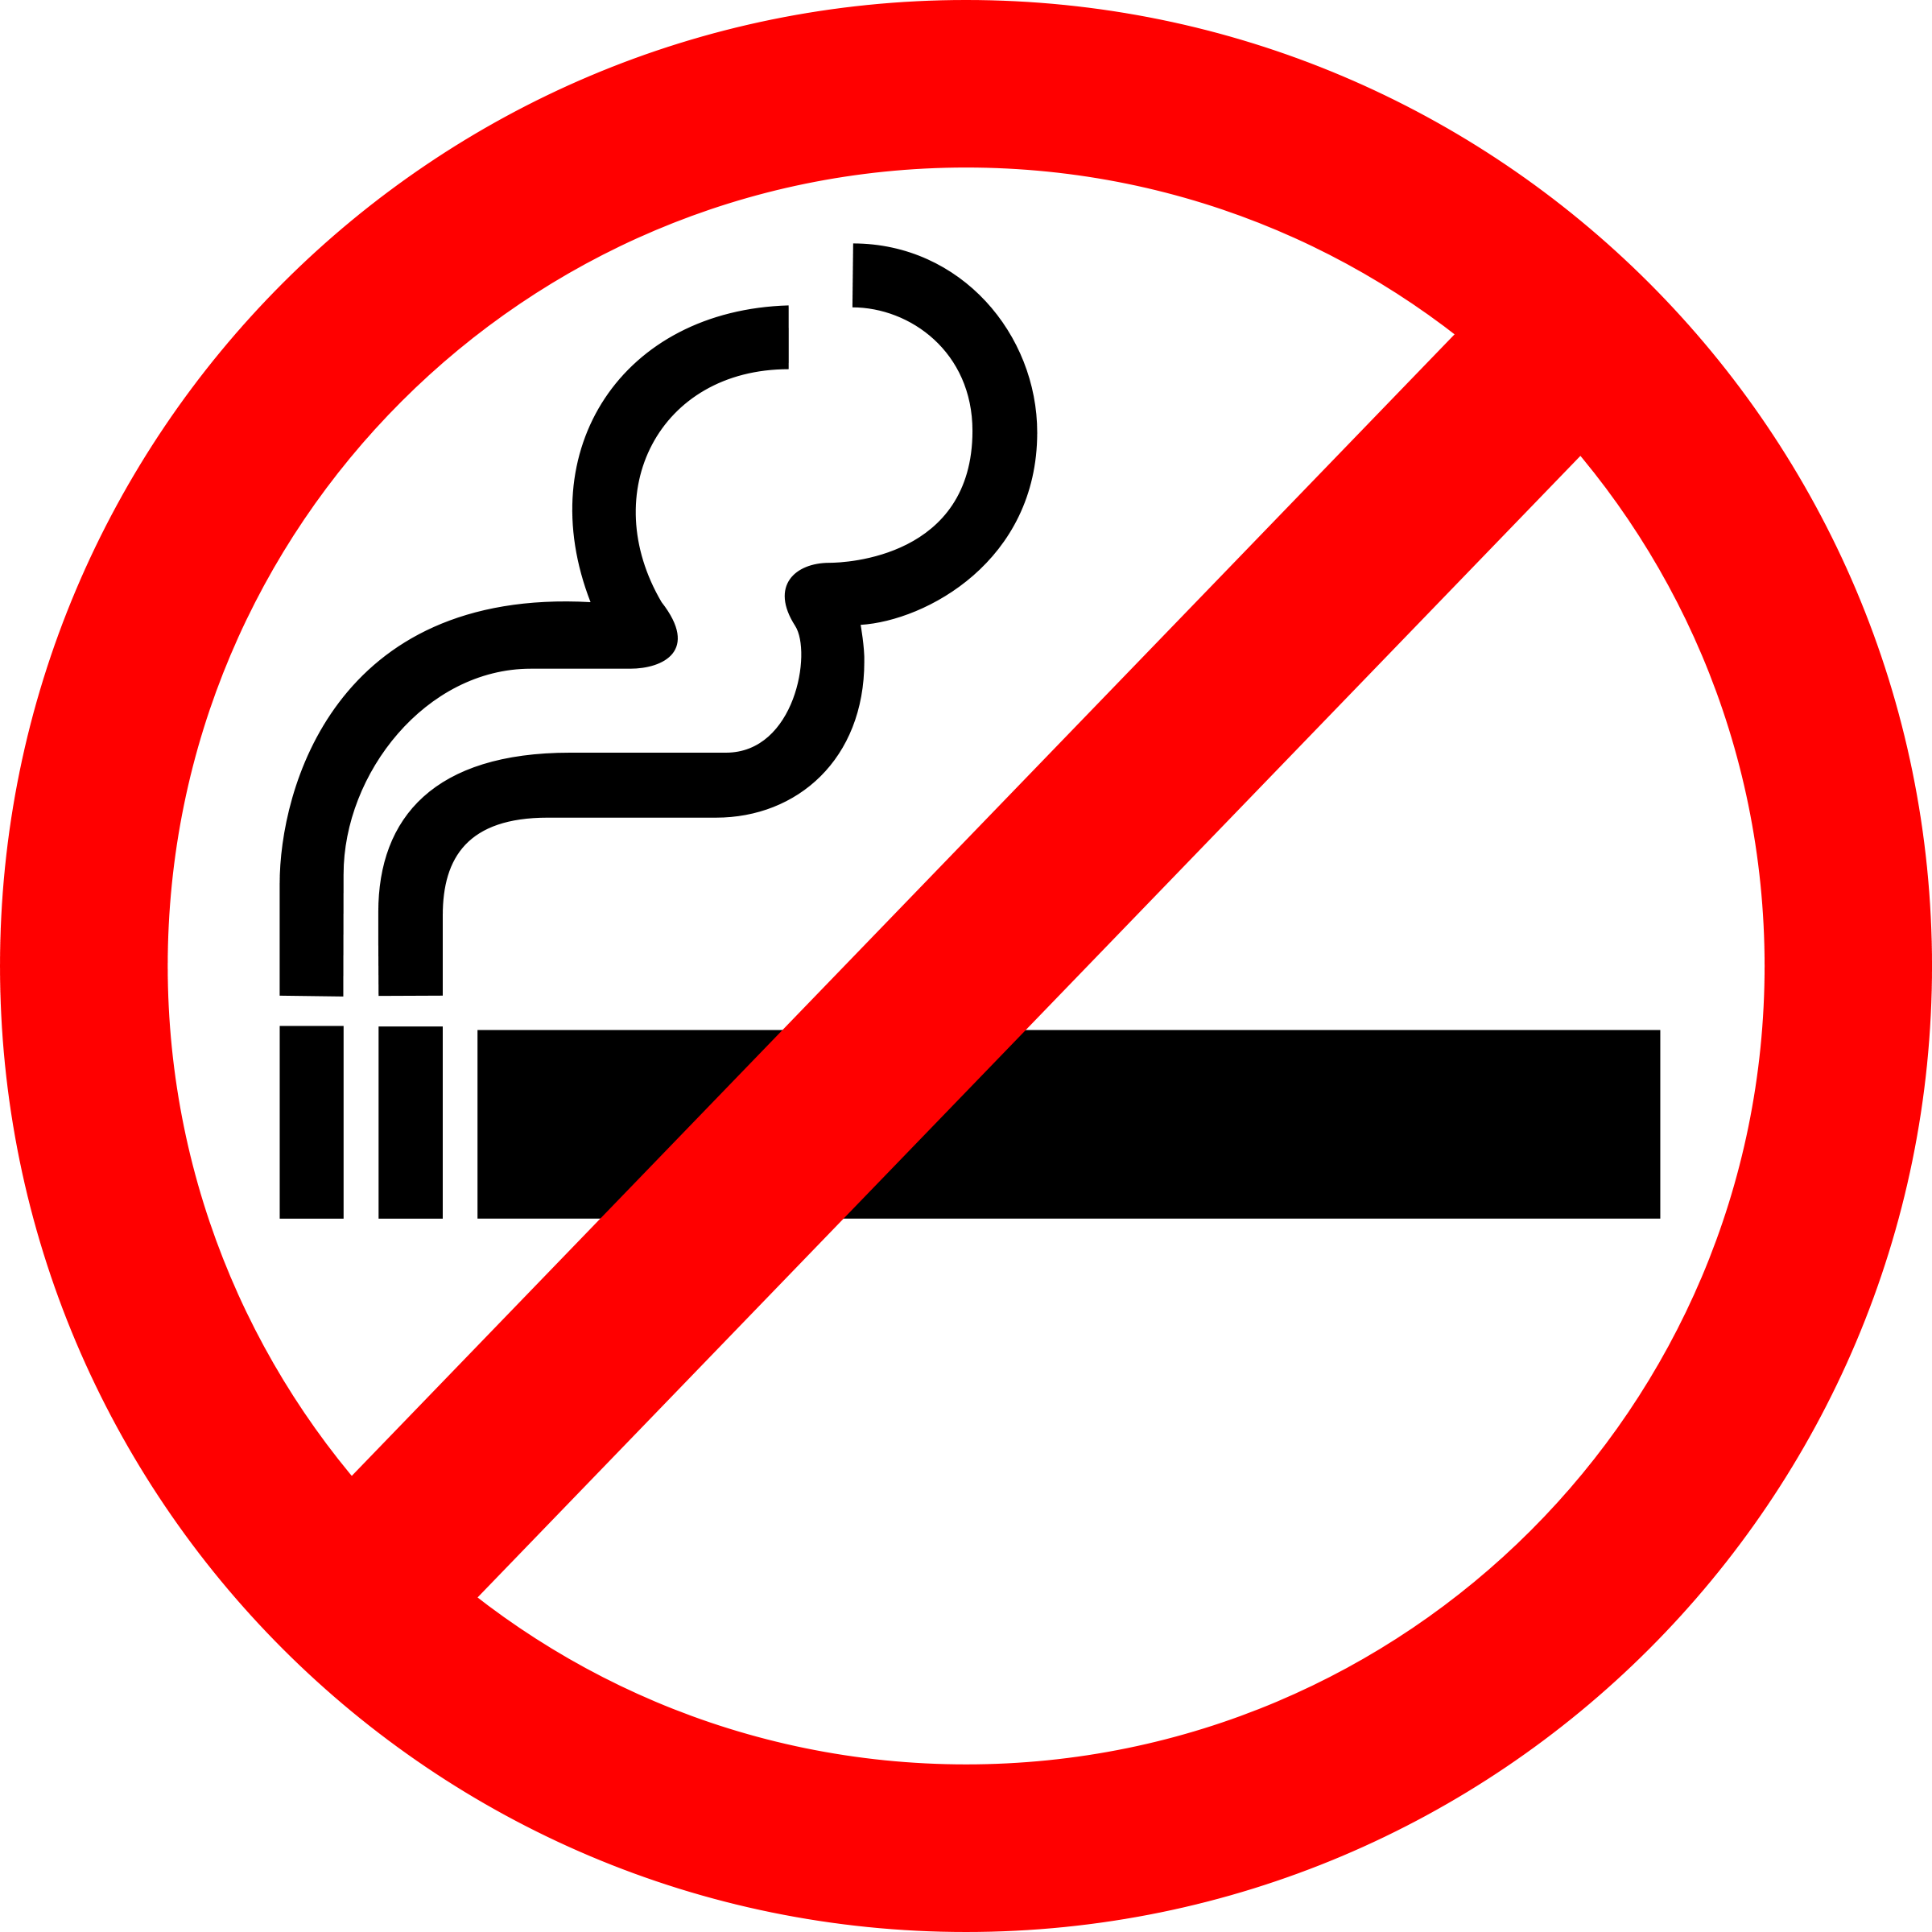 Free No Smoking Sign, Download Free Clip Art, Free Clip Art.